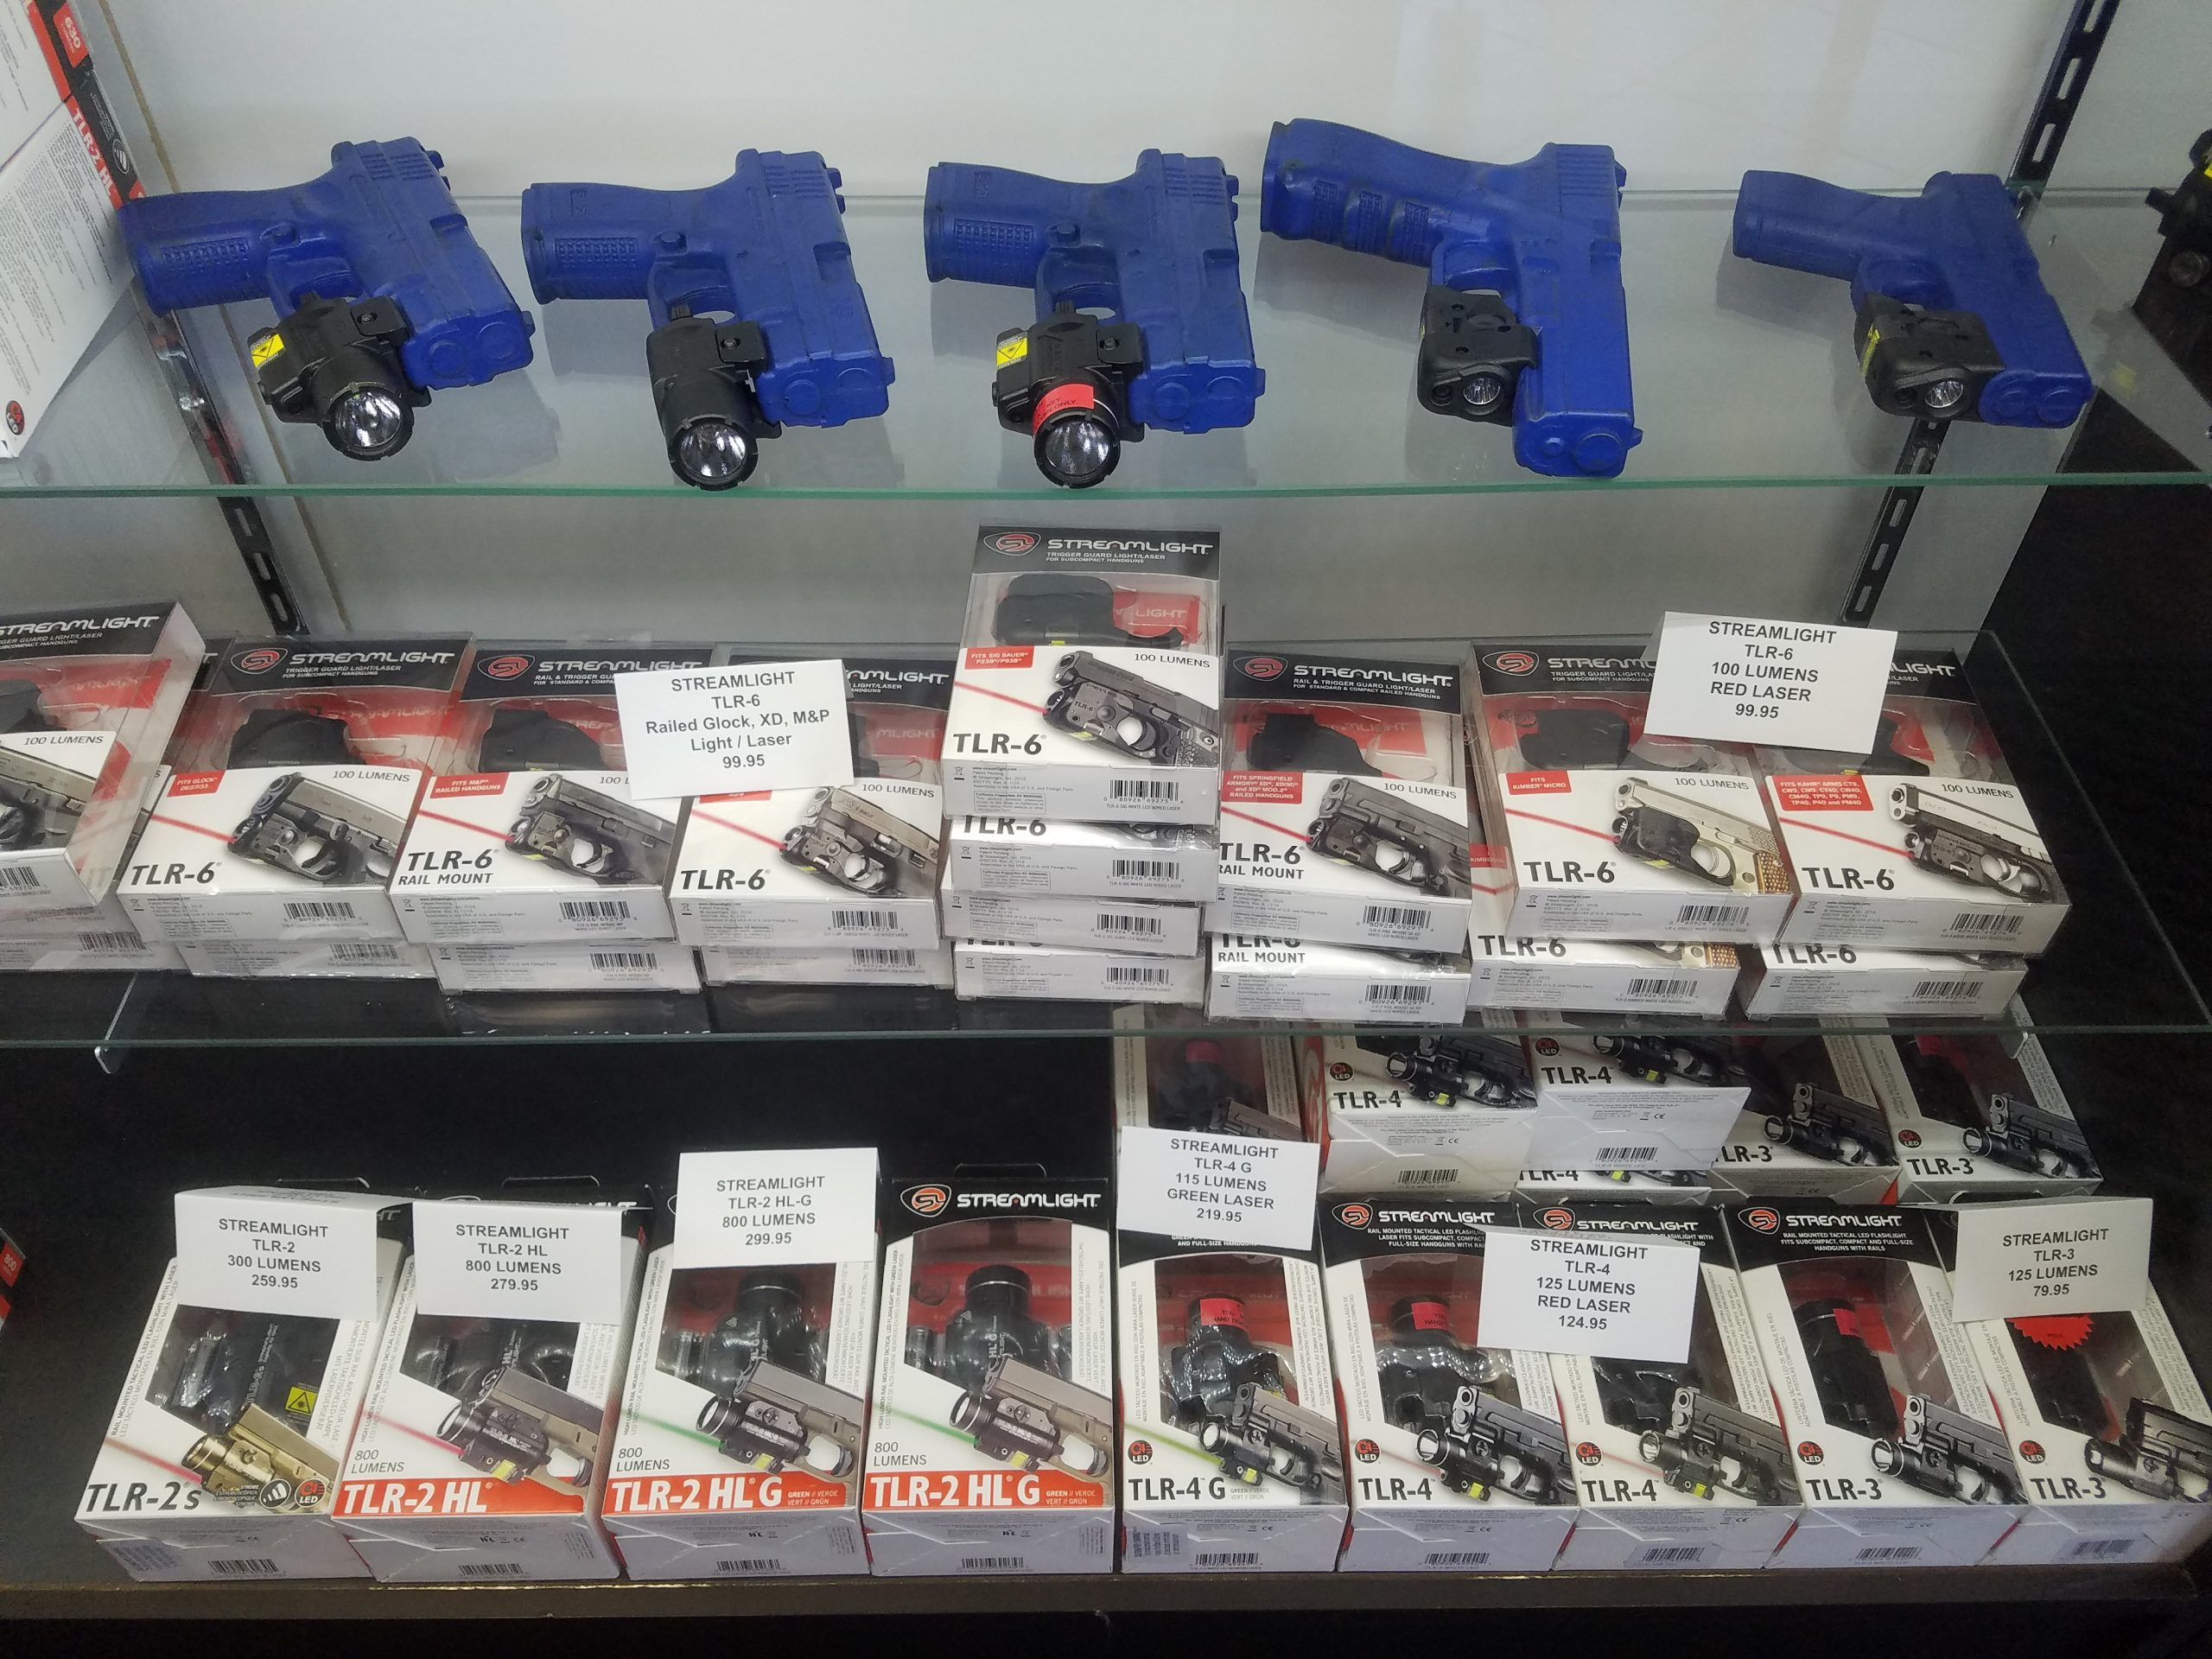 Flashlight Outlet has all your Streamlight Weapon-mounted lighting needs for handguns, shotguns, and rifles